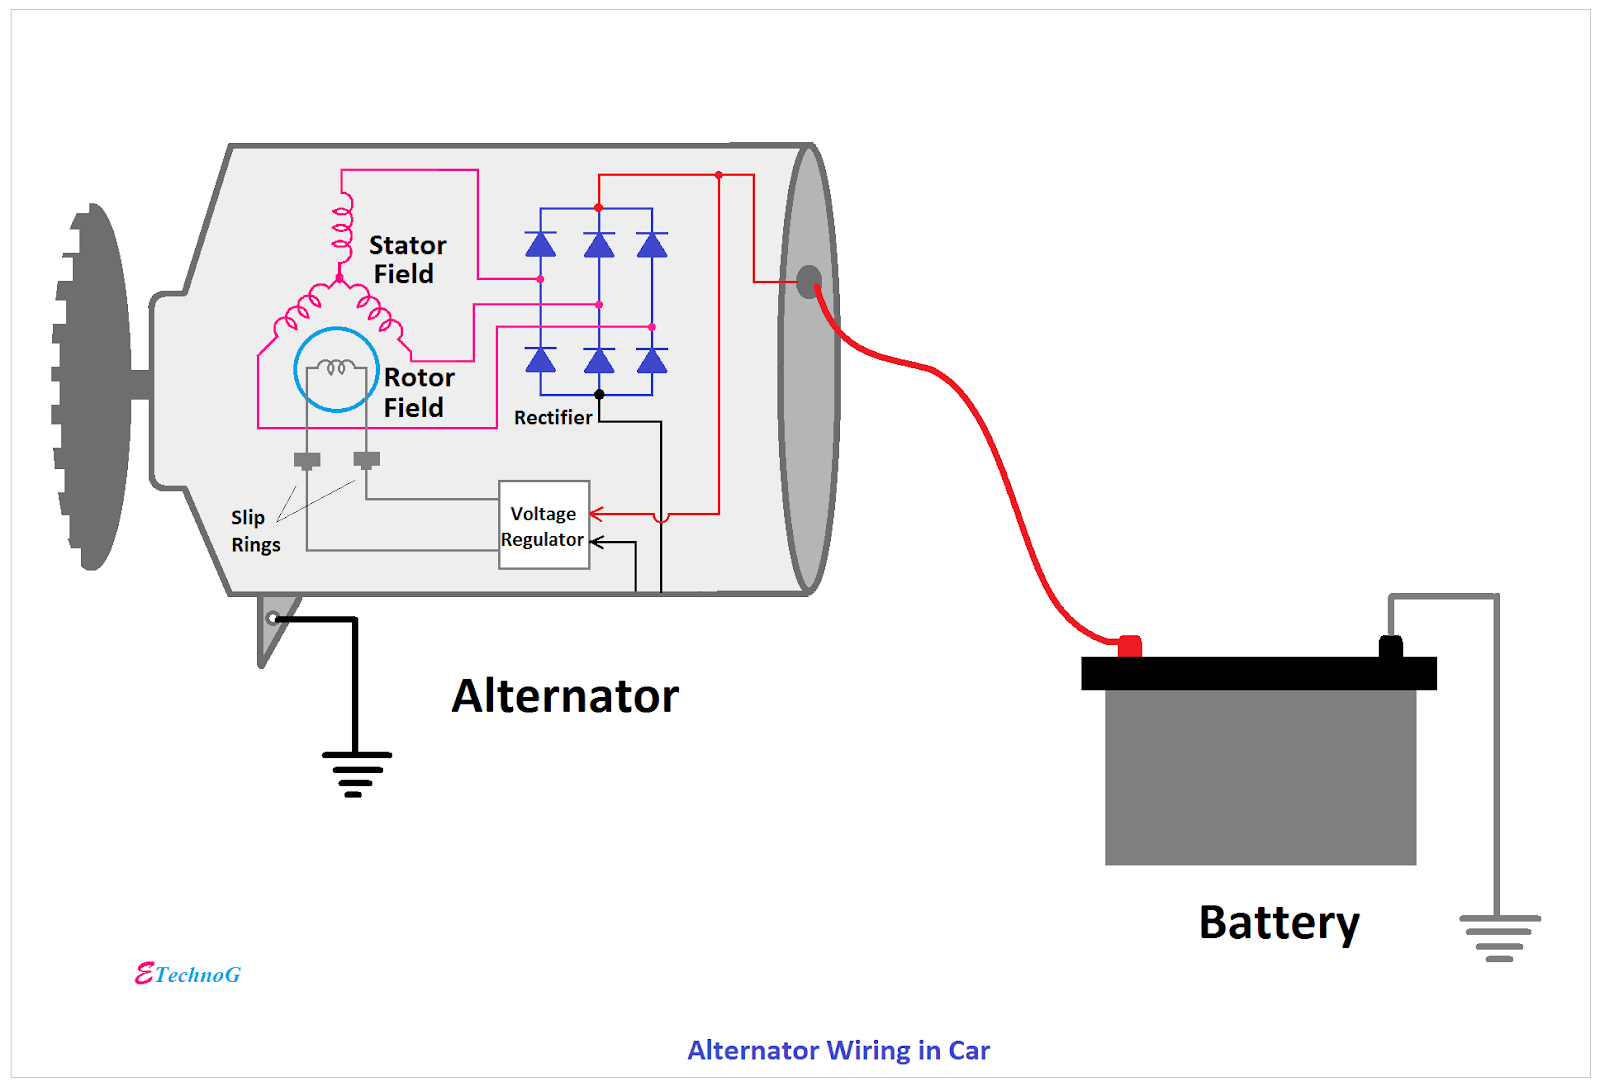 Alternator Function and Alternator Wiring Diagram in Car - ETechnoG | Battery To Alternator Wiring Diagram |  | ETechnoG